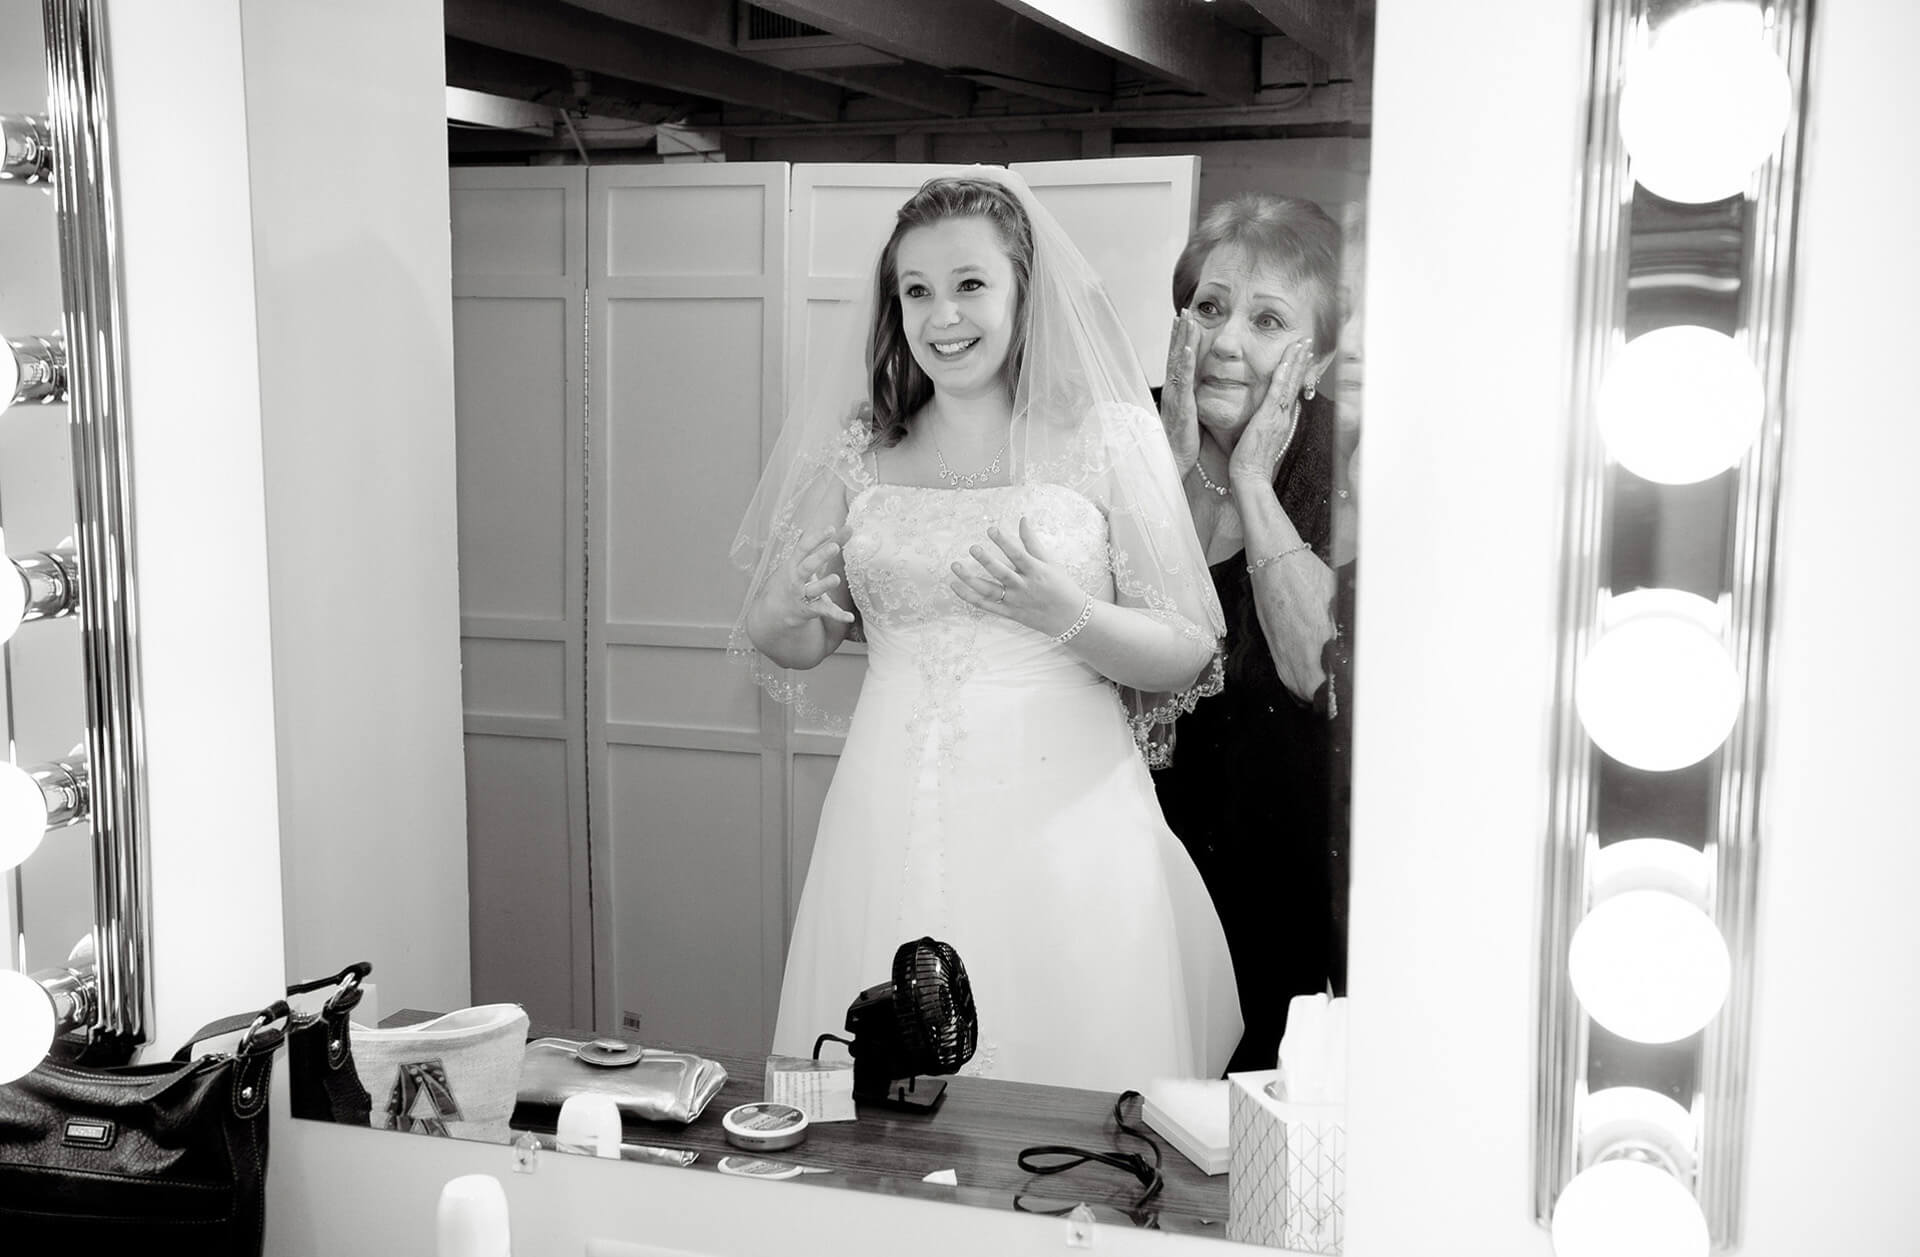 A Clarkston, Michigan bride finishes her wedding preparations in a mirror as her grandmother sees her for the first time.